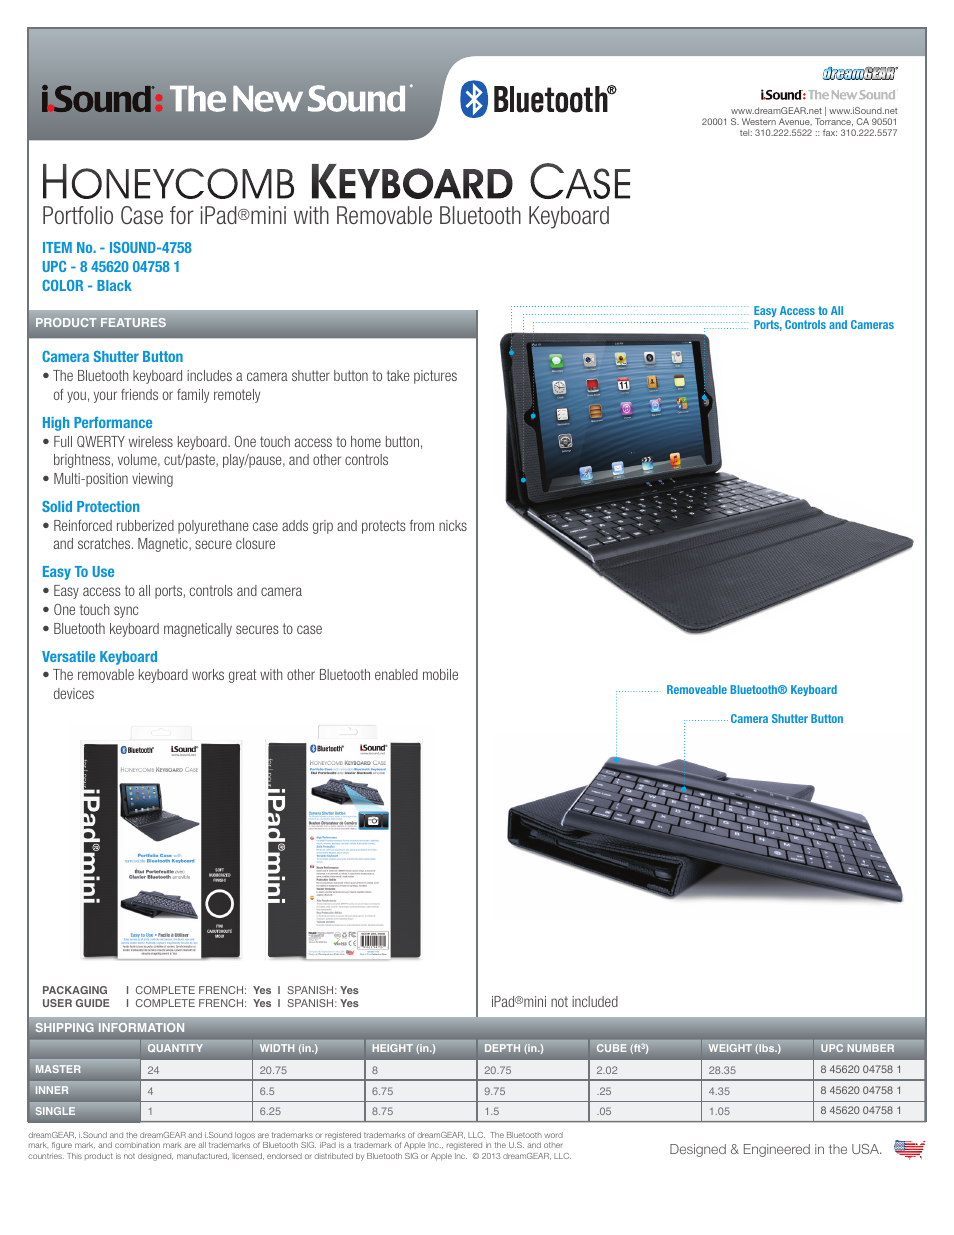 iSound Honeycomb Keyboard Case with Bluetooth for iPadmini